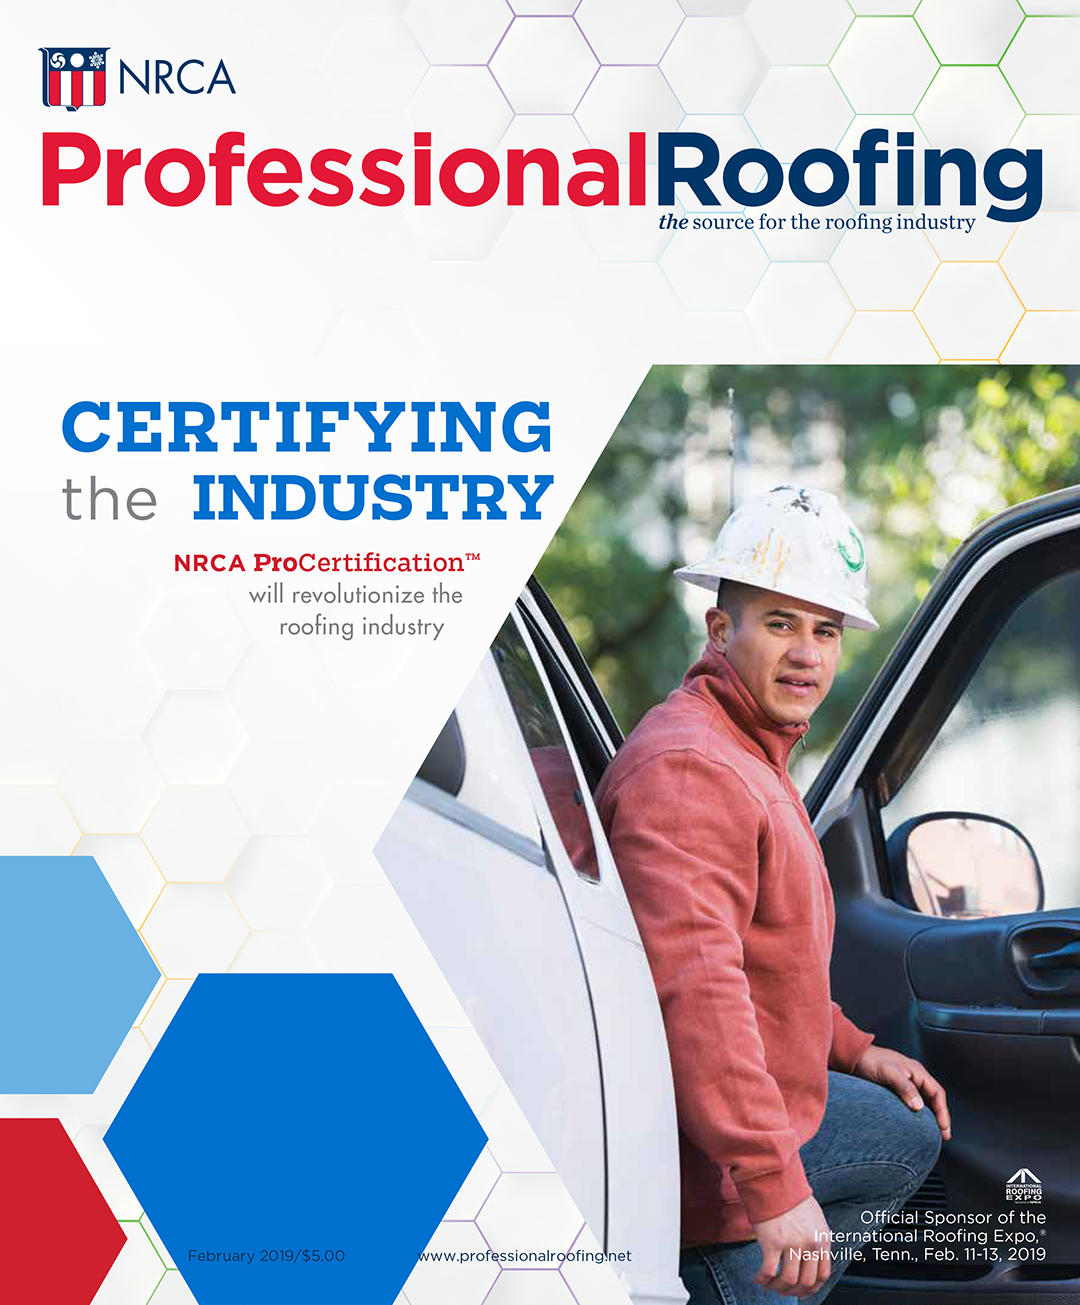 Professional Roofing Magazine 2/1/2019